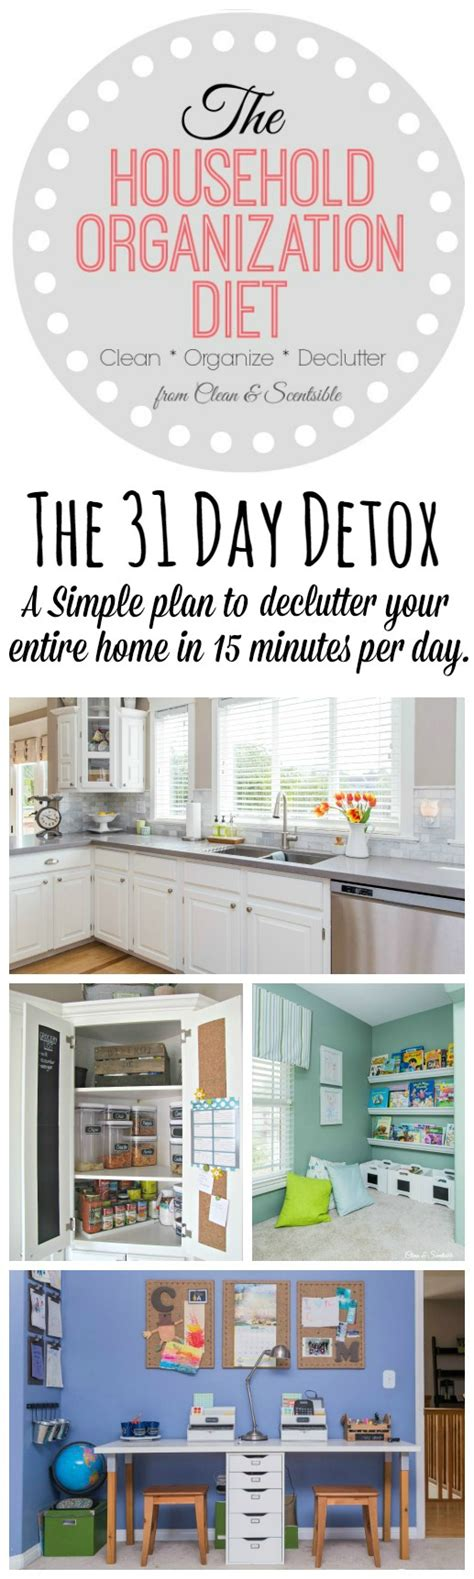 organize day the household organization diet 31 day detox 2015 clean